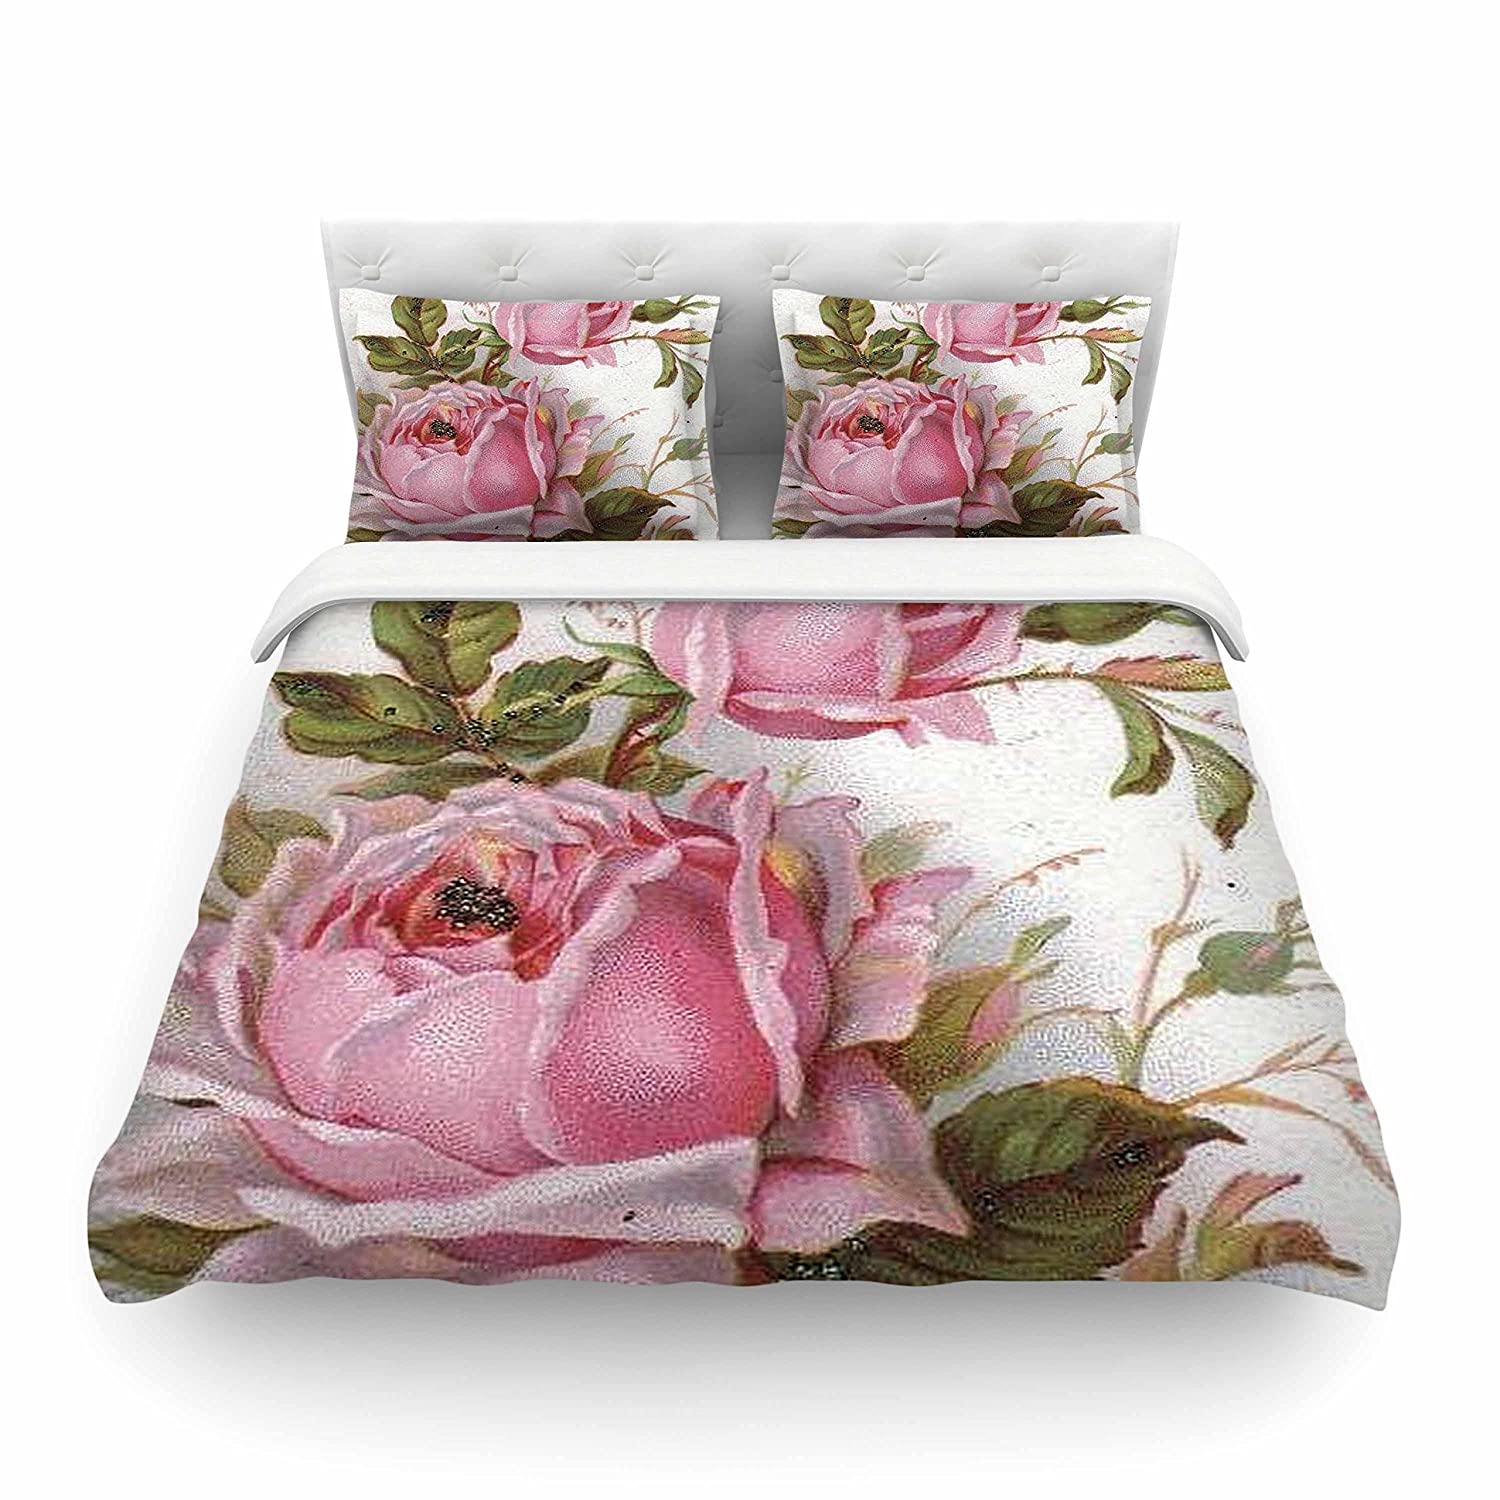 88 x 88, Kess InHouse Suzanne Carter Vintage Rose Featherweight Queen Duvet Cover